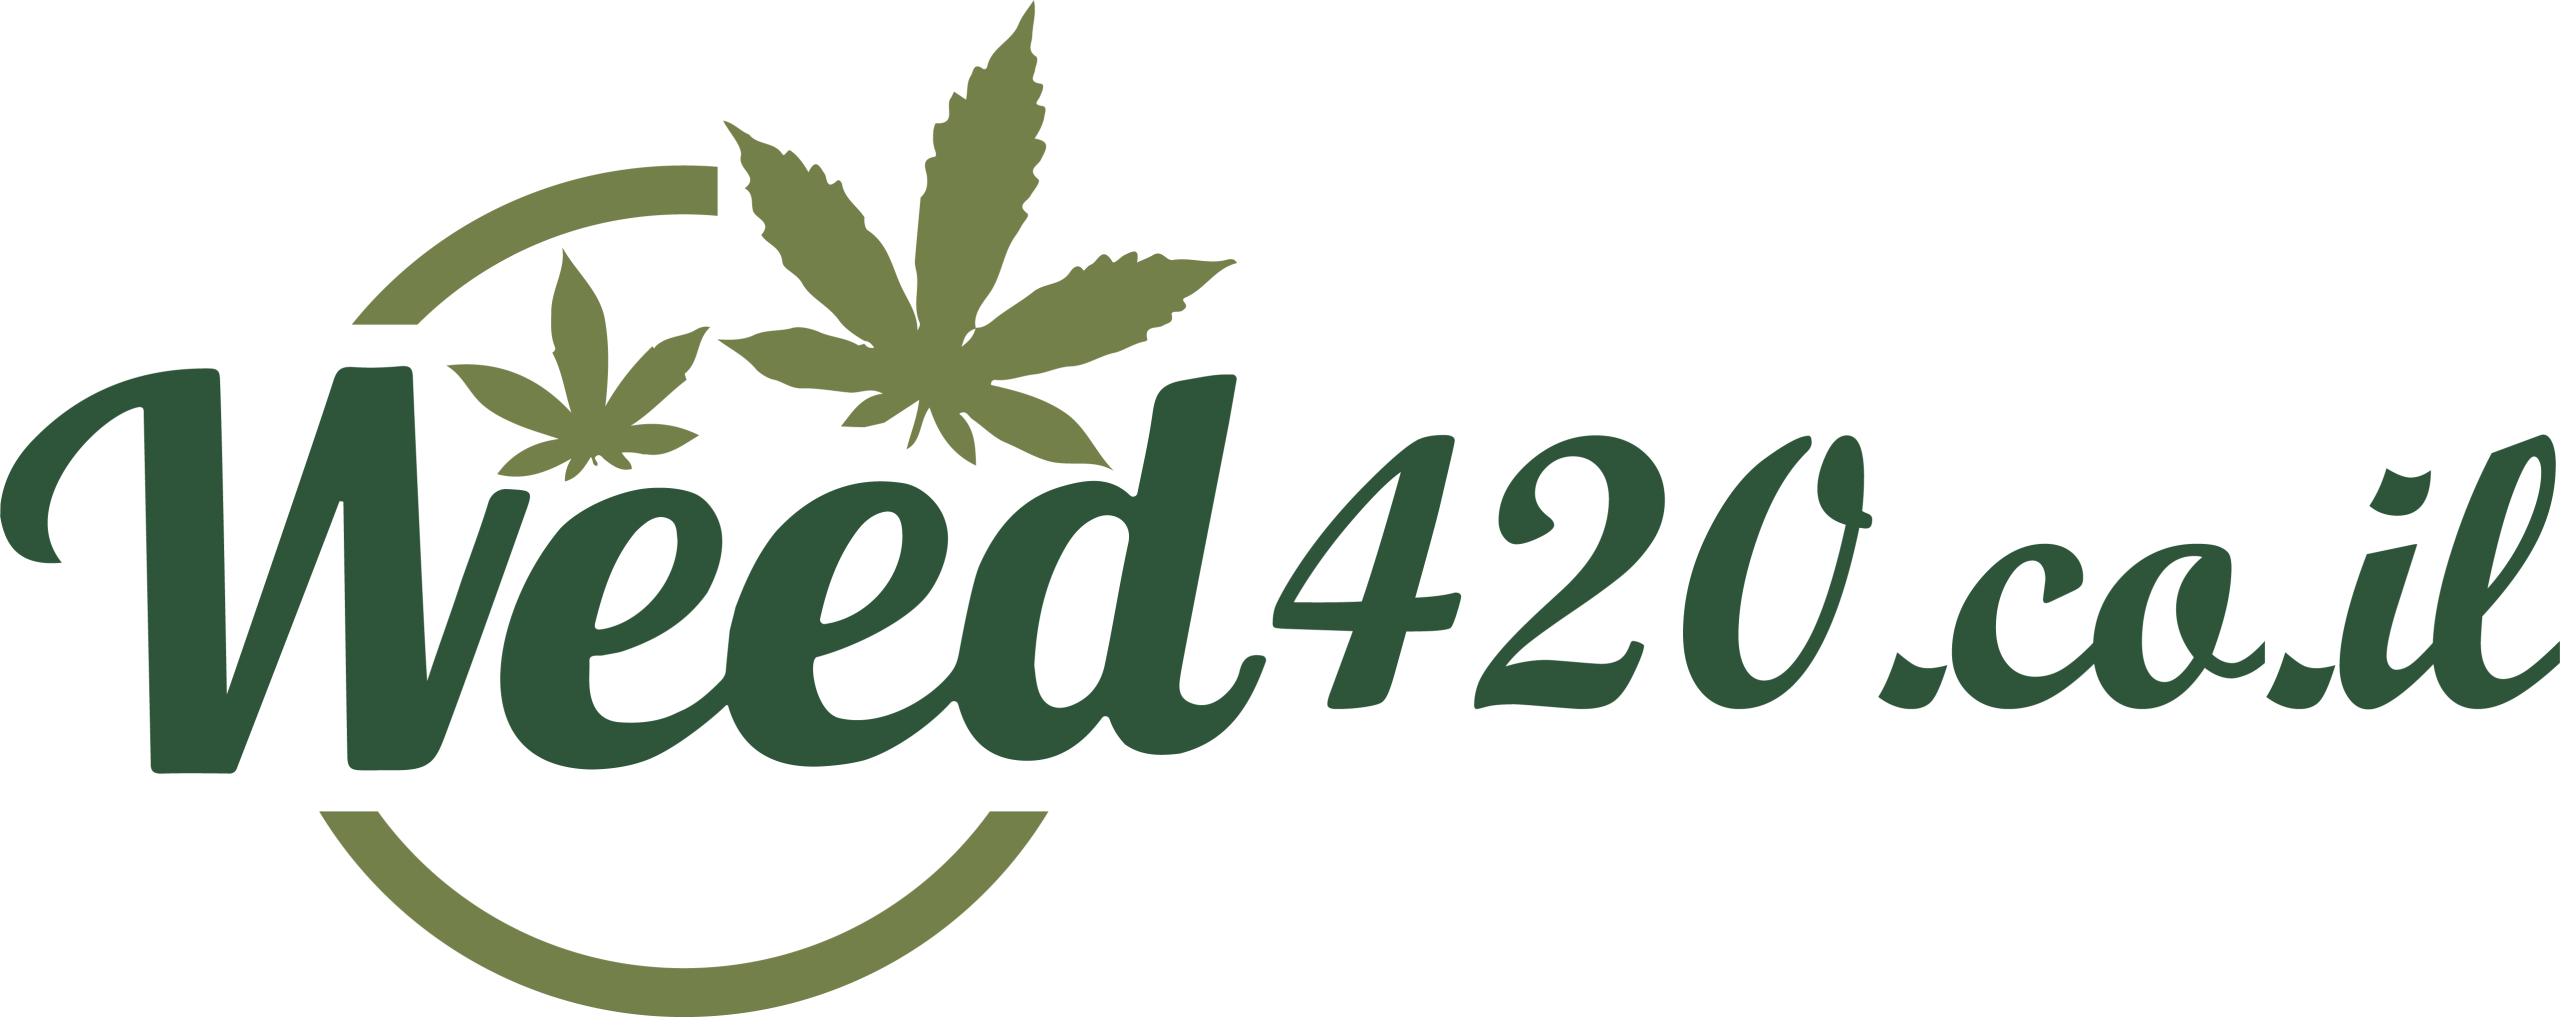 Weed420.co.il